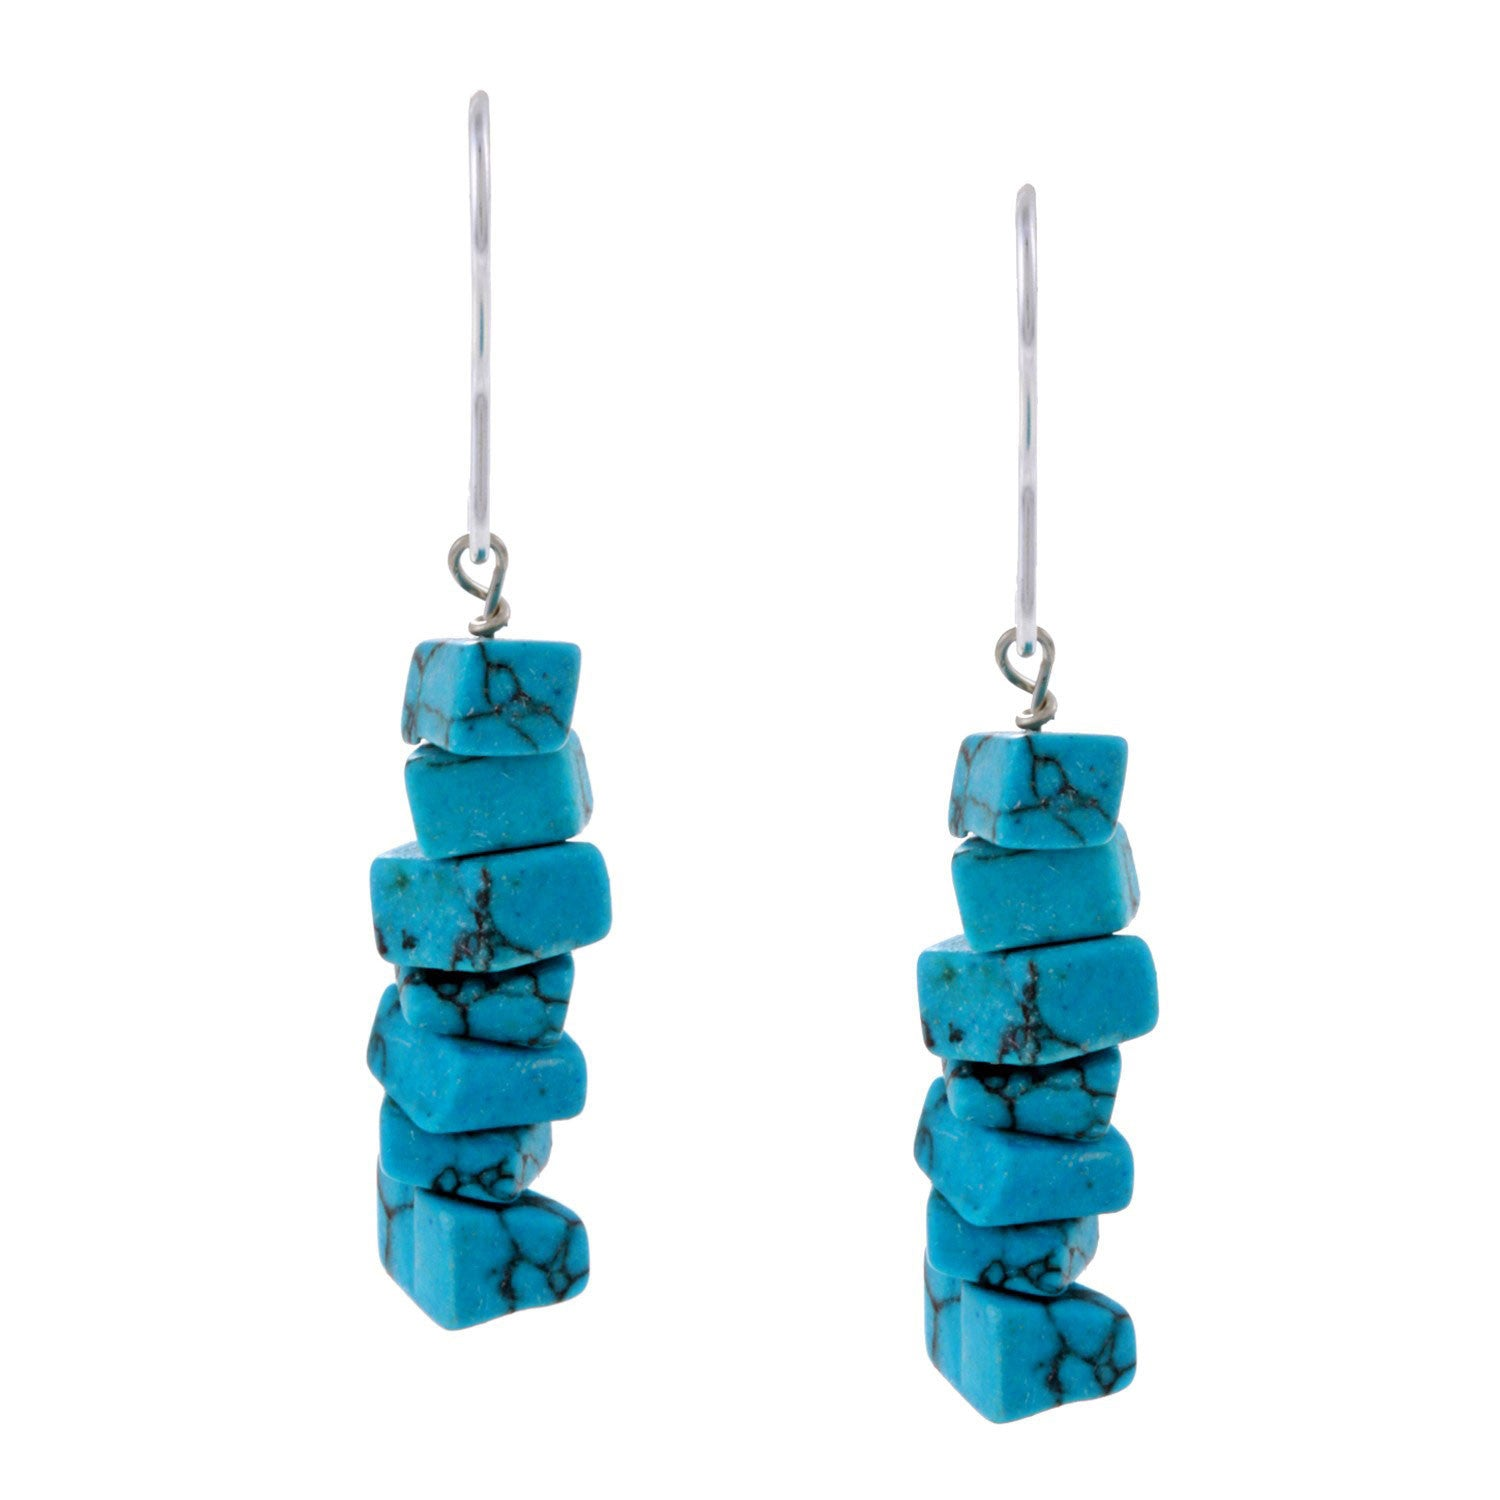 Gemstone Chip Sterling Silver Hook Dangle Earrings - Turquoise